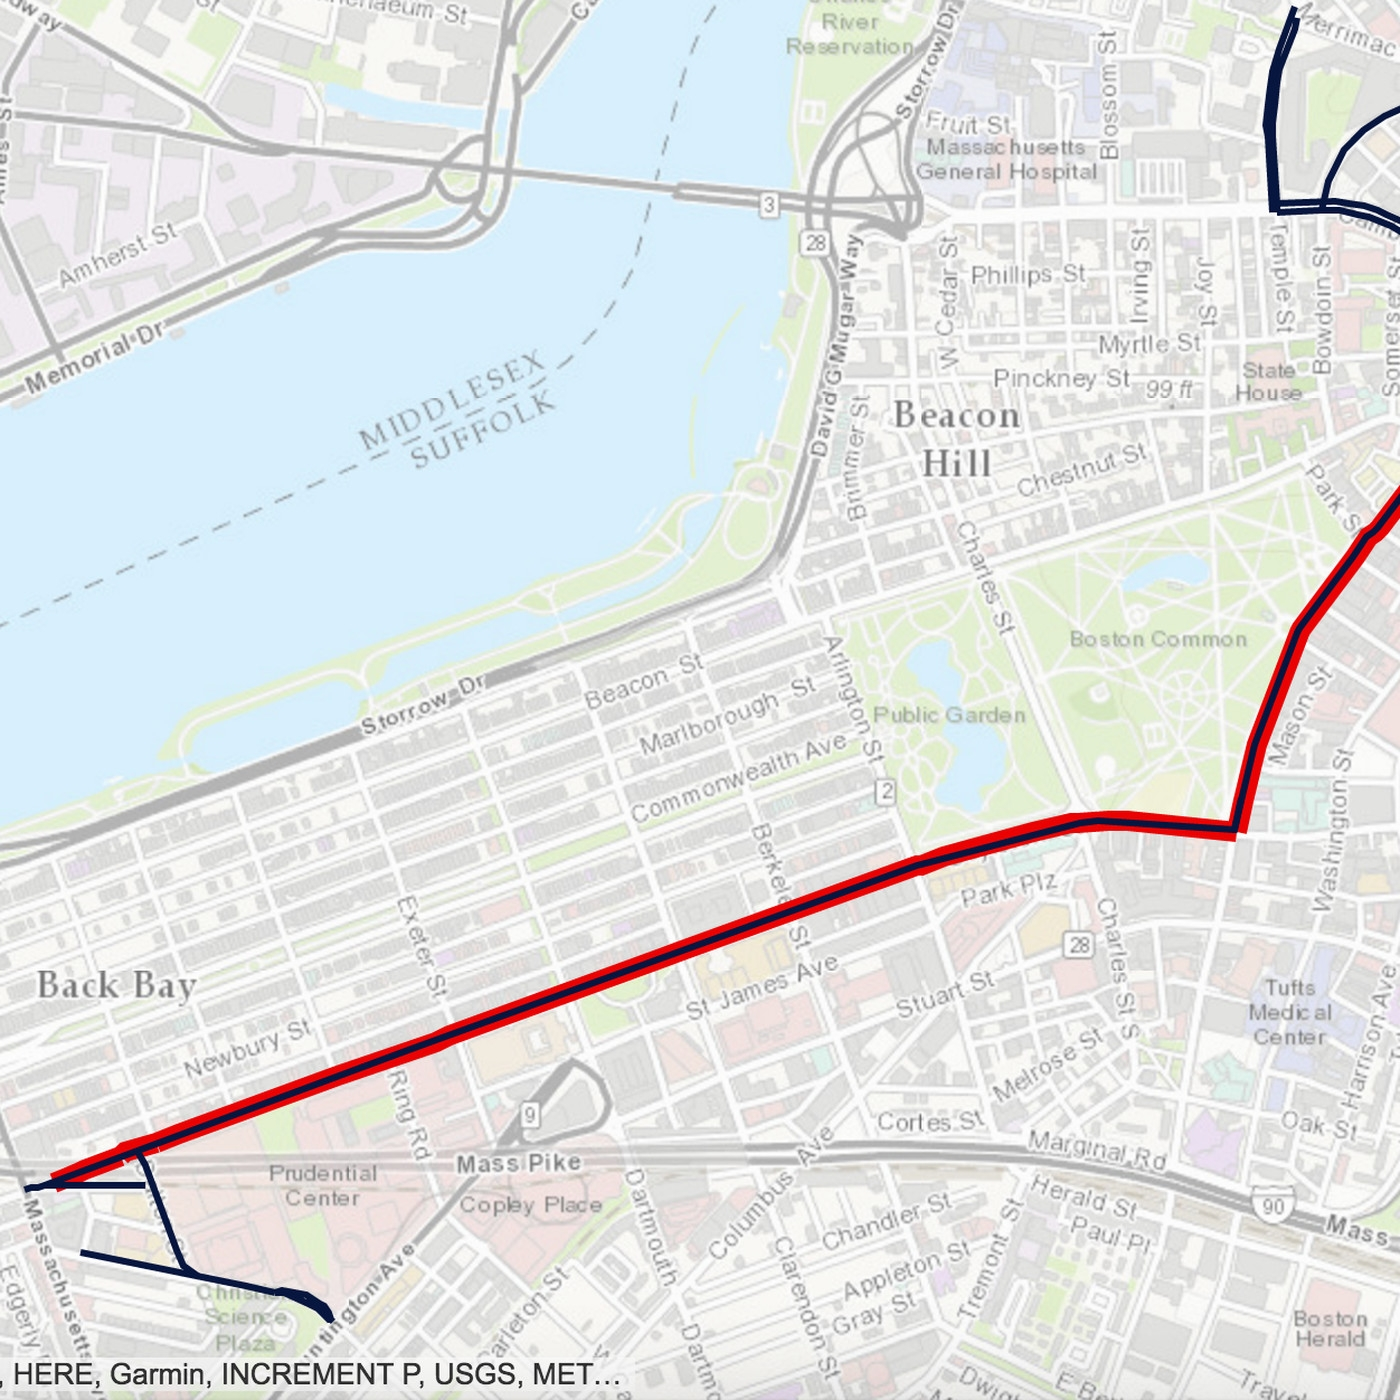 Patriots Super Bowl Parade 2017: Map, Route, And Road throughout Super Bowl Parade Map